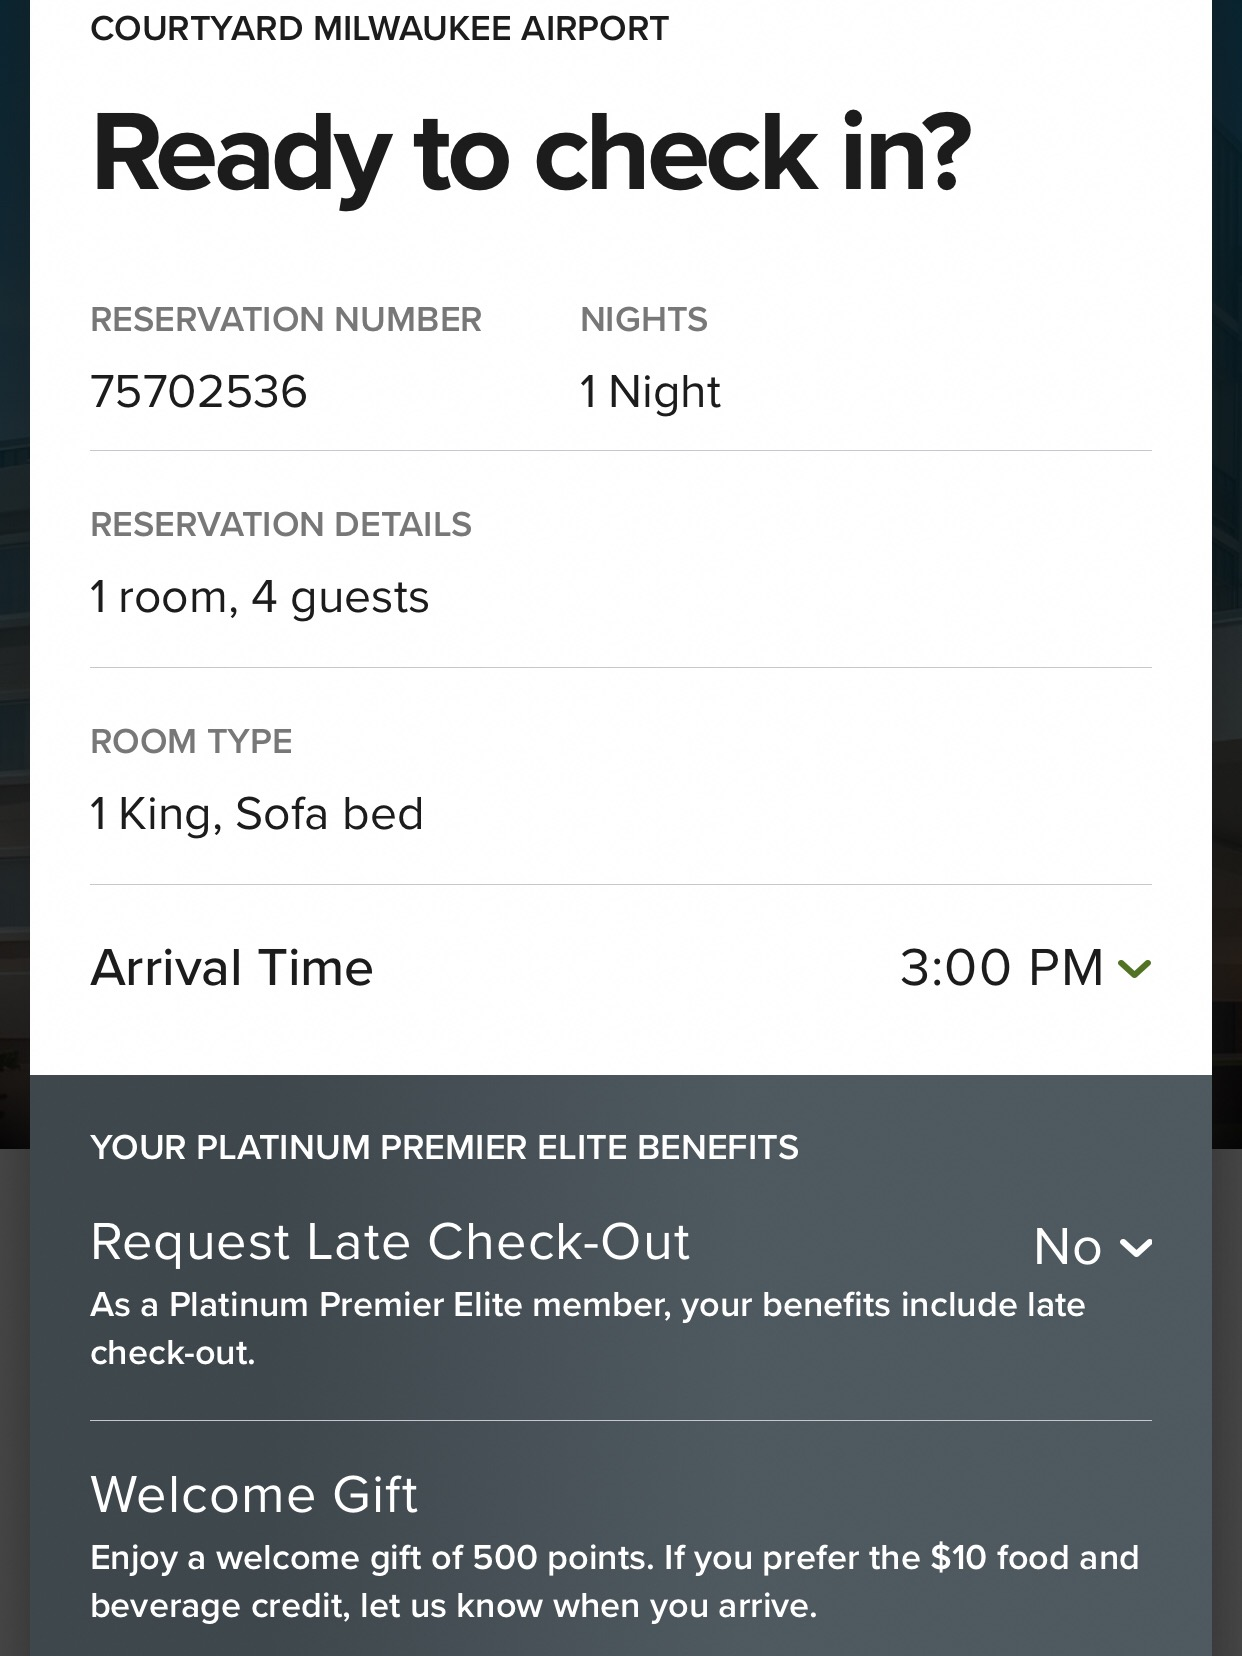 All guests can select an arrival time, and certain Bonvoy Elite tiers are entitled to guaranteed late check-out (I checked in the day before Platinum Premier Elite became Titanium Elite).